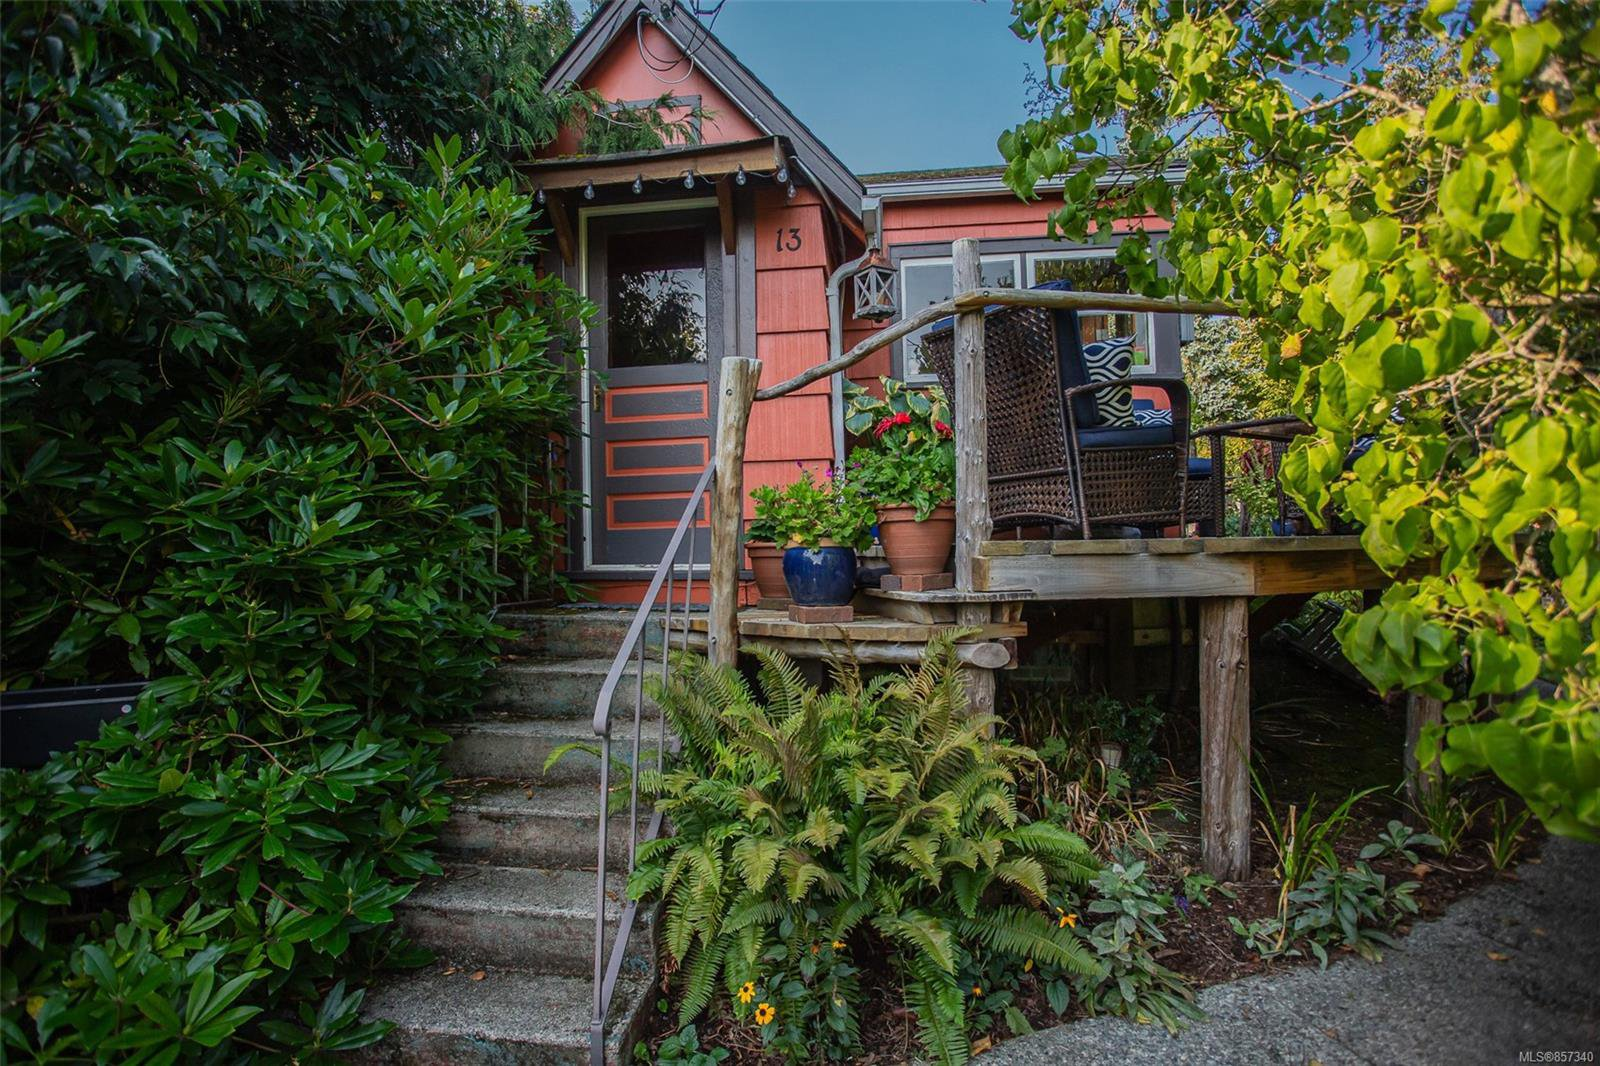 Main Photo: 13 Machleary St in : Na Old City House for sale (Nanaimo)  : MLS®# 857340